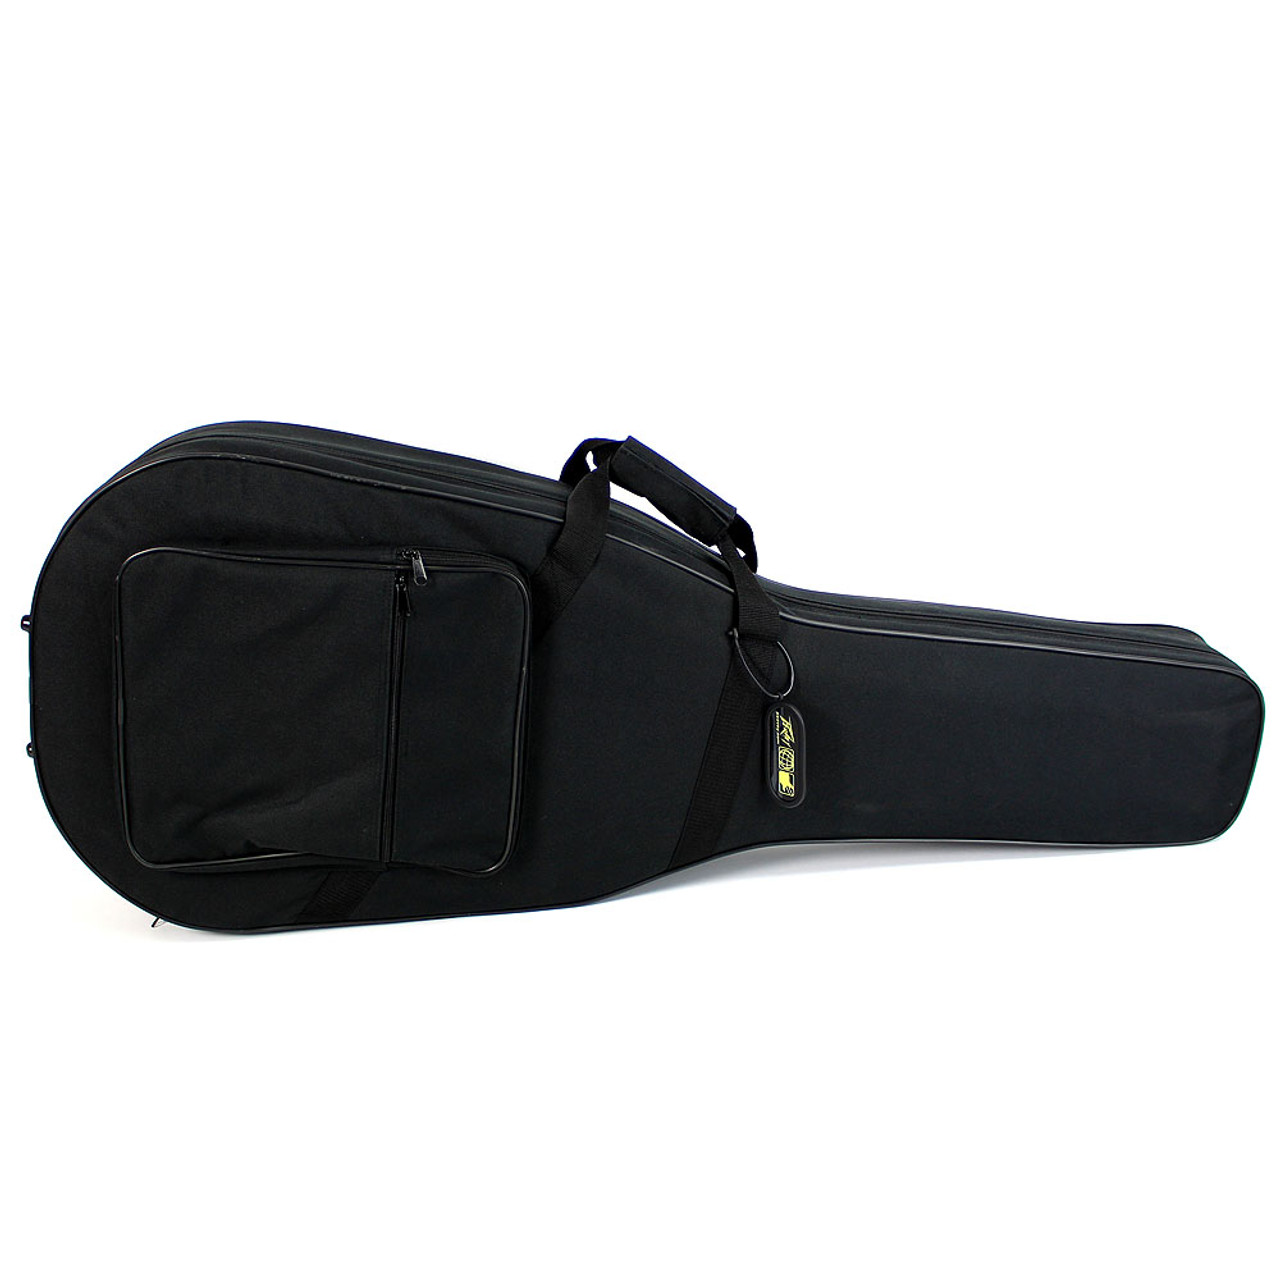 new dreadnought lite acoustic guitar case by peavey cream city music. Black Bedroom Furniture Sets. Home Design Ideas